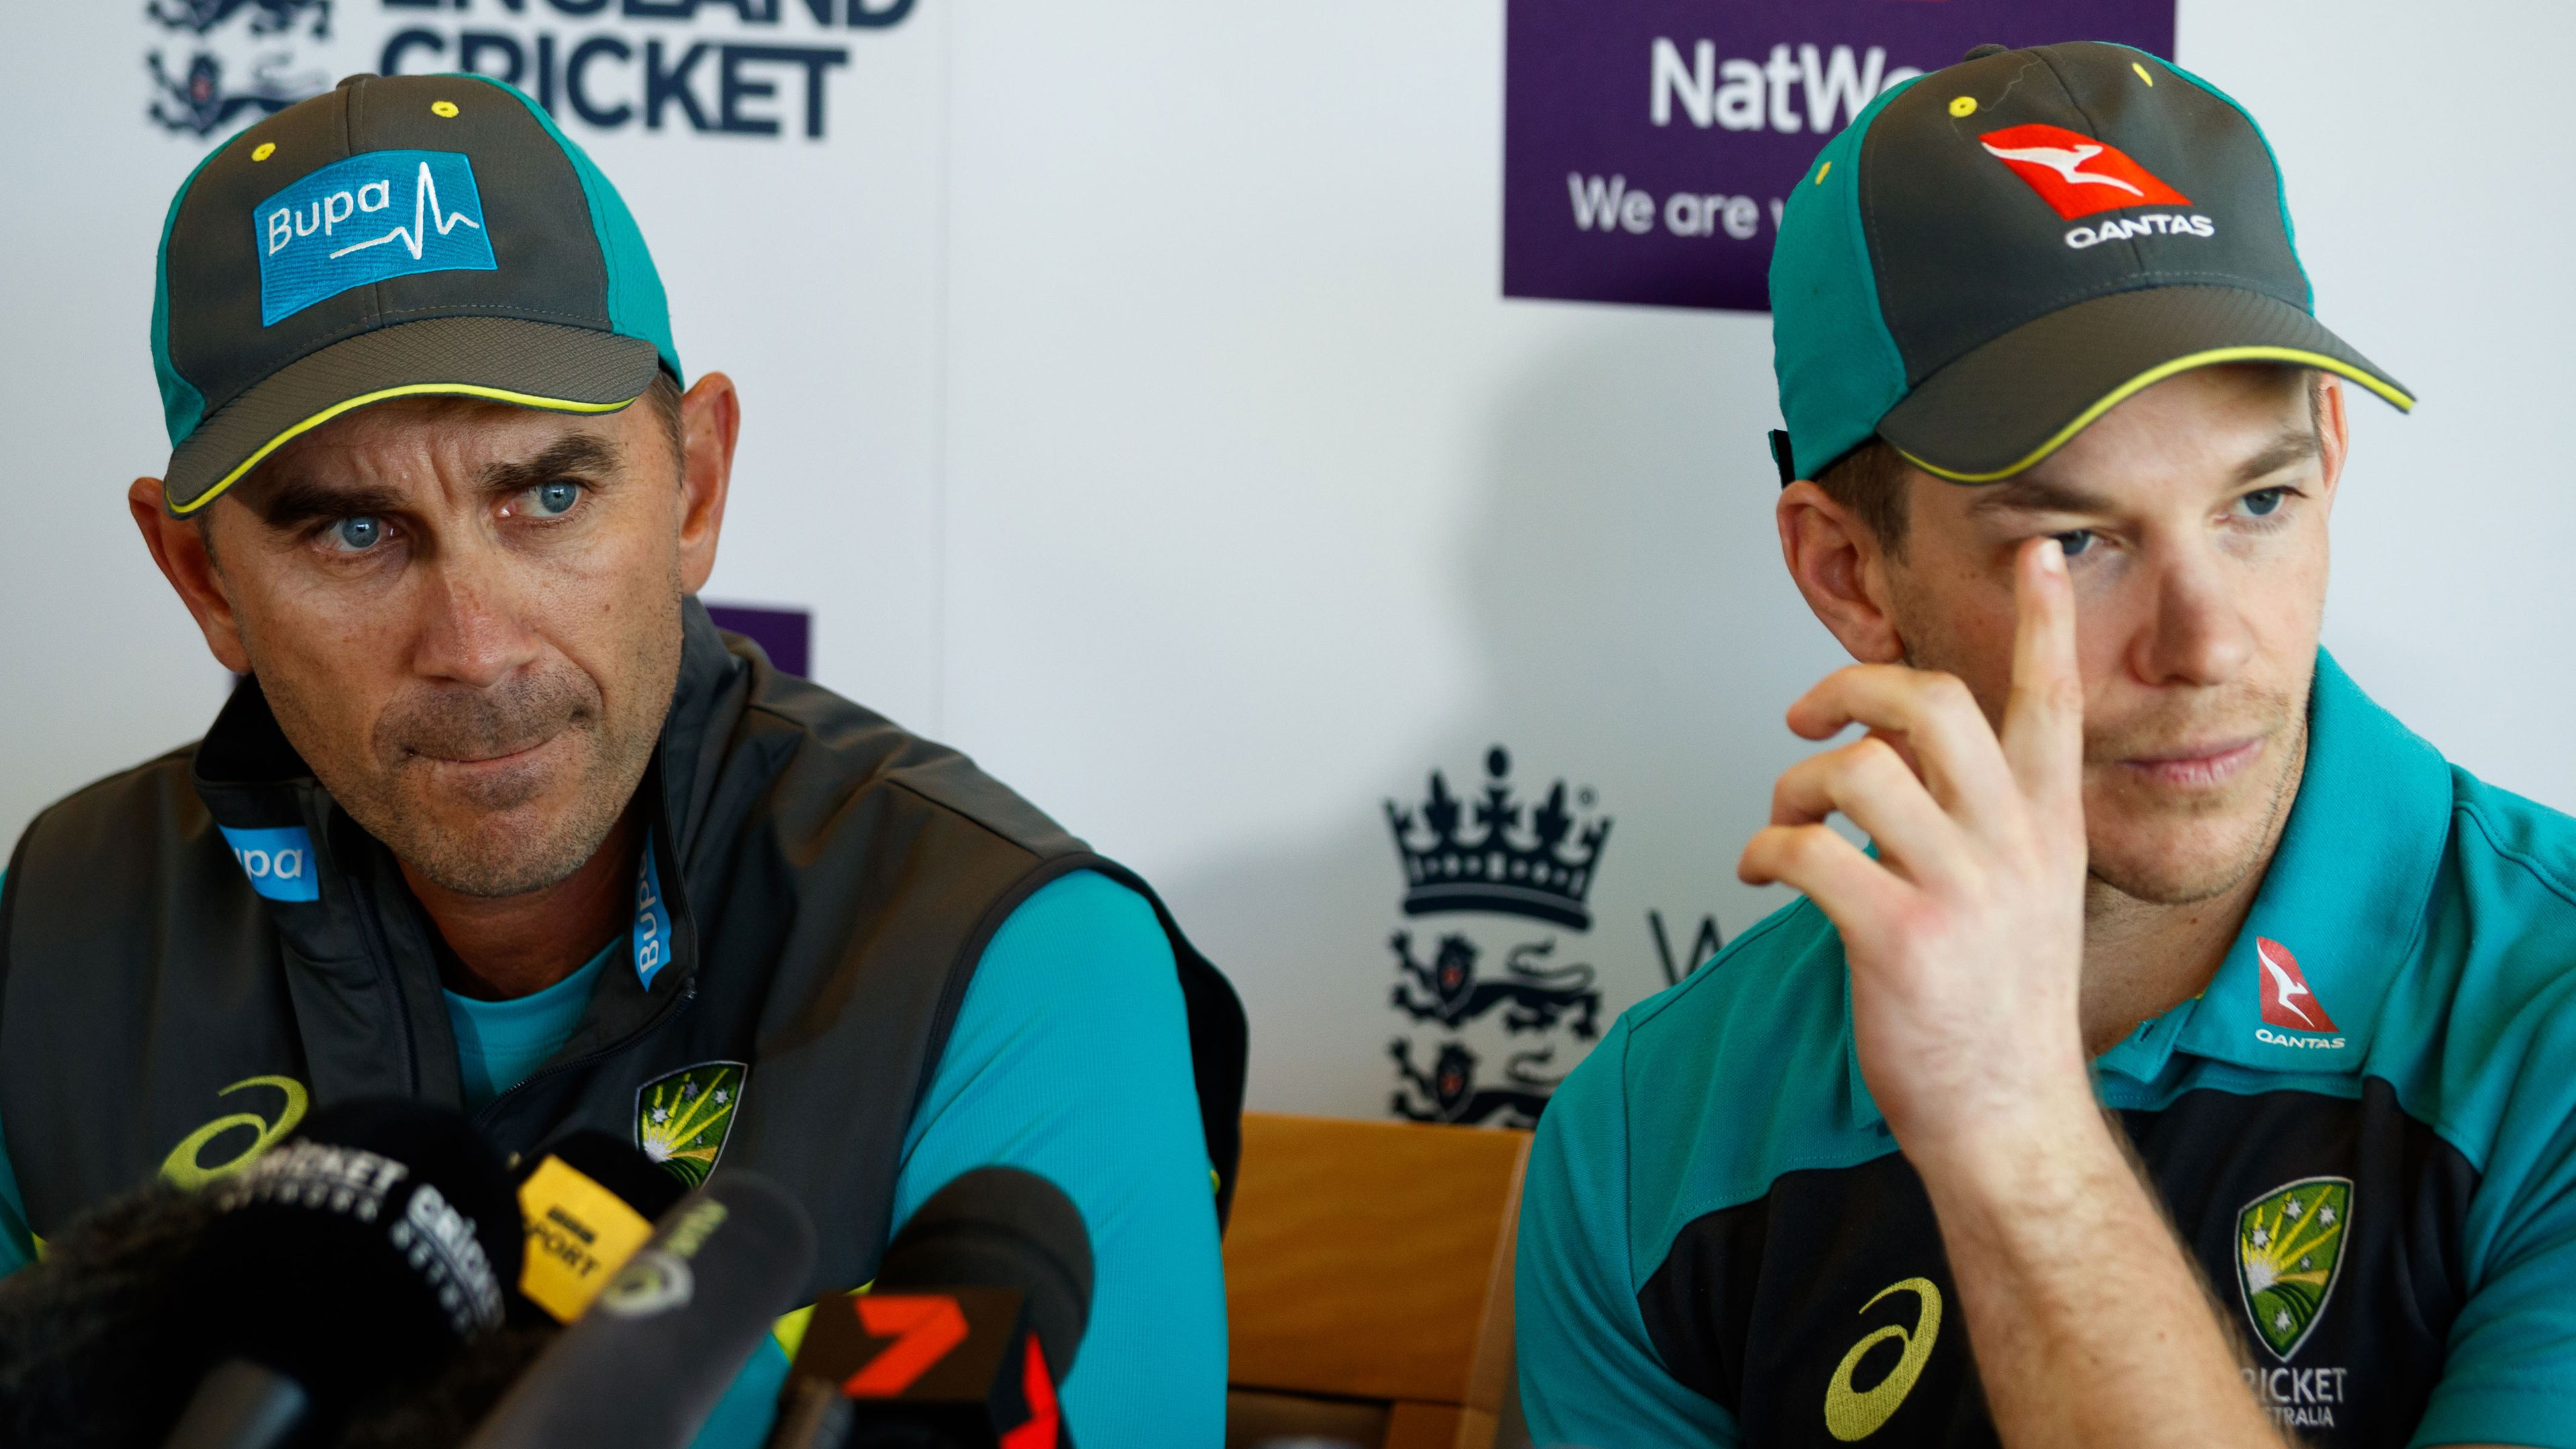 Tim Paine blundered by not stamping authority over Justin Langer: Ian Chappell